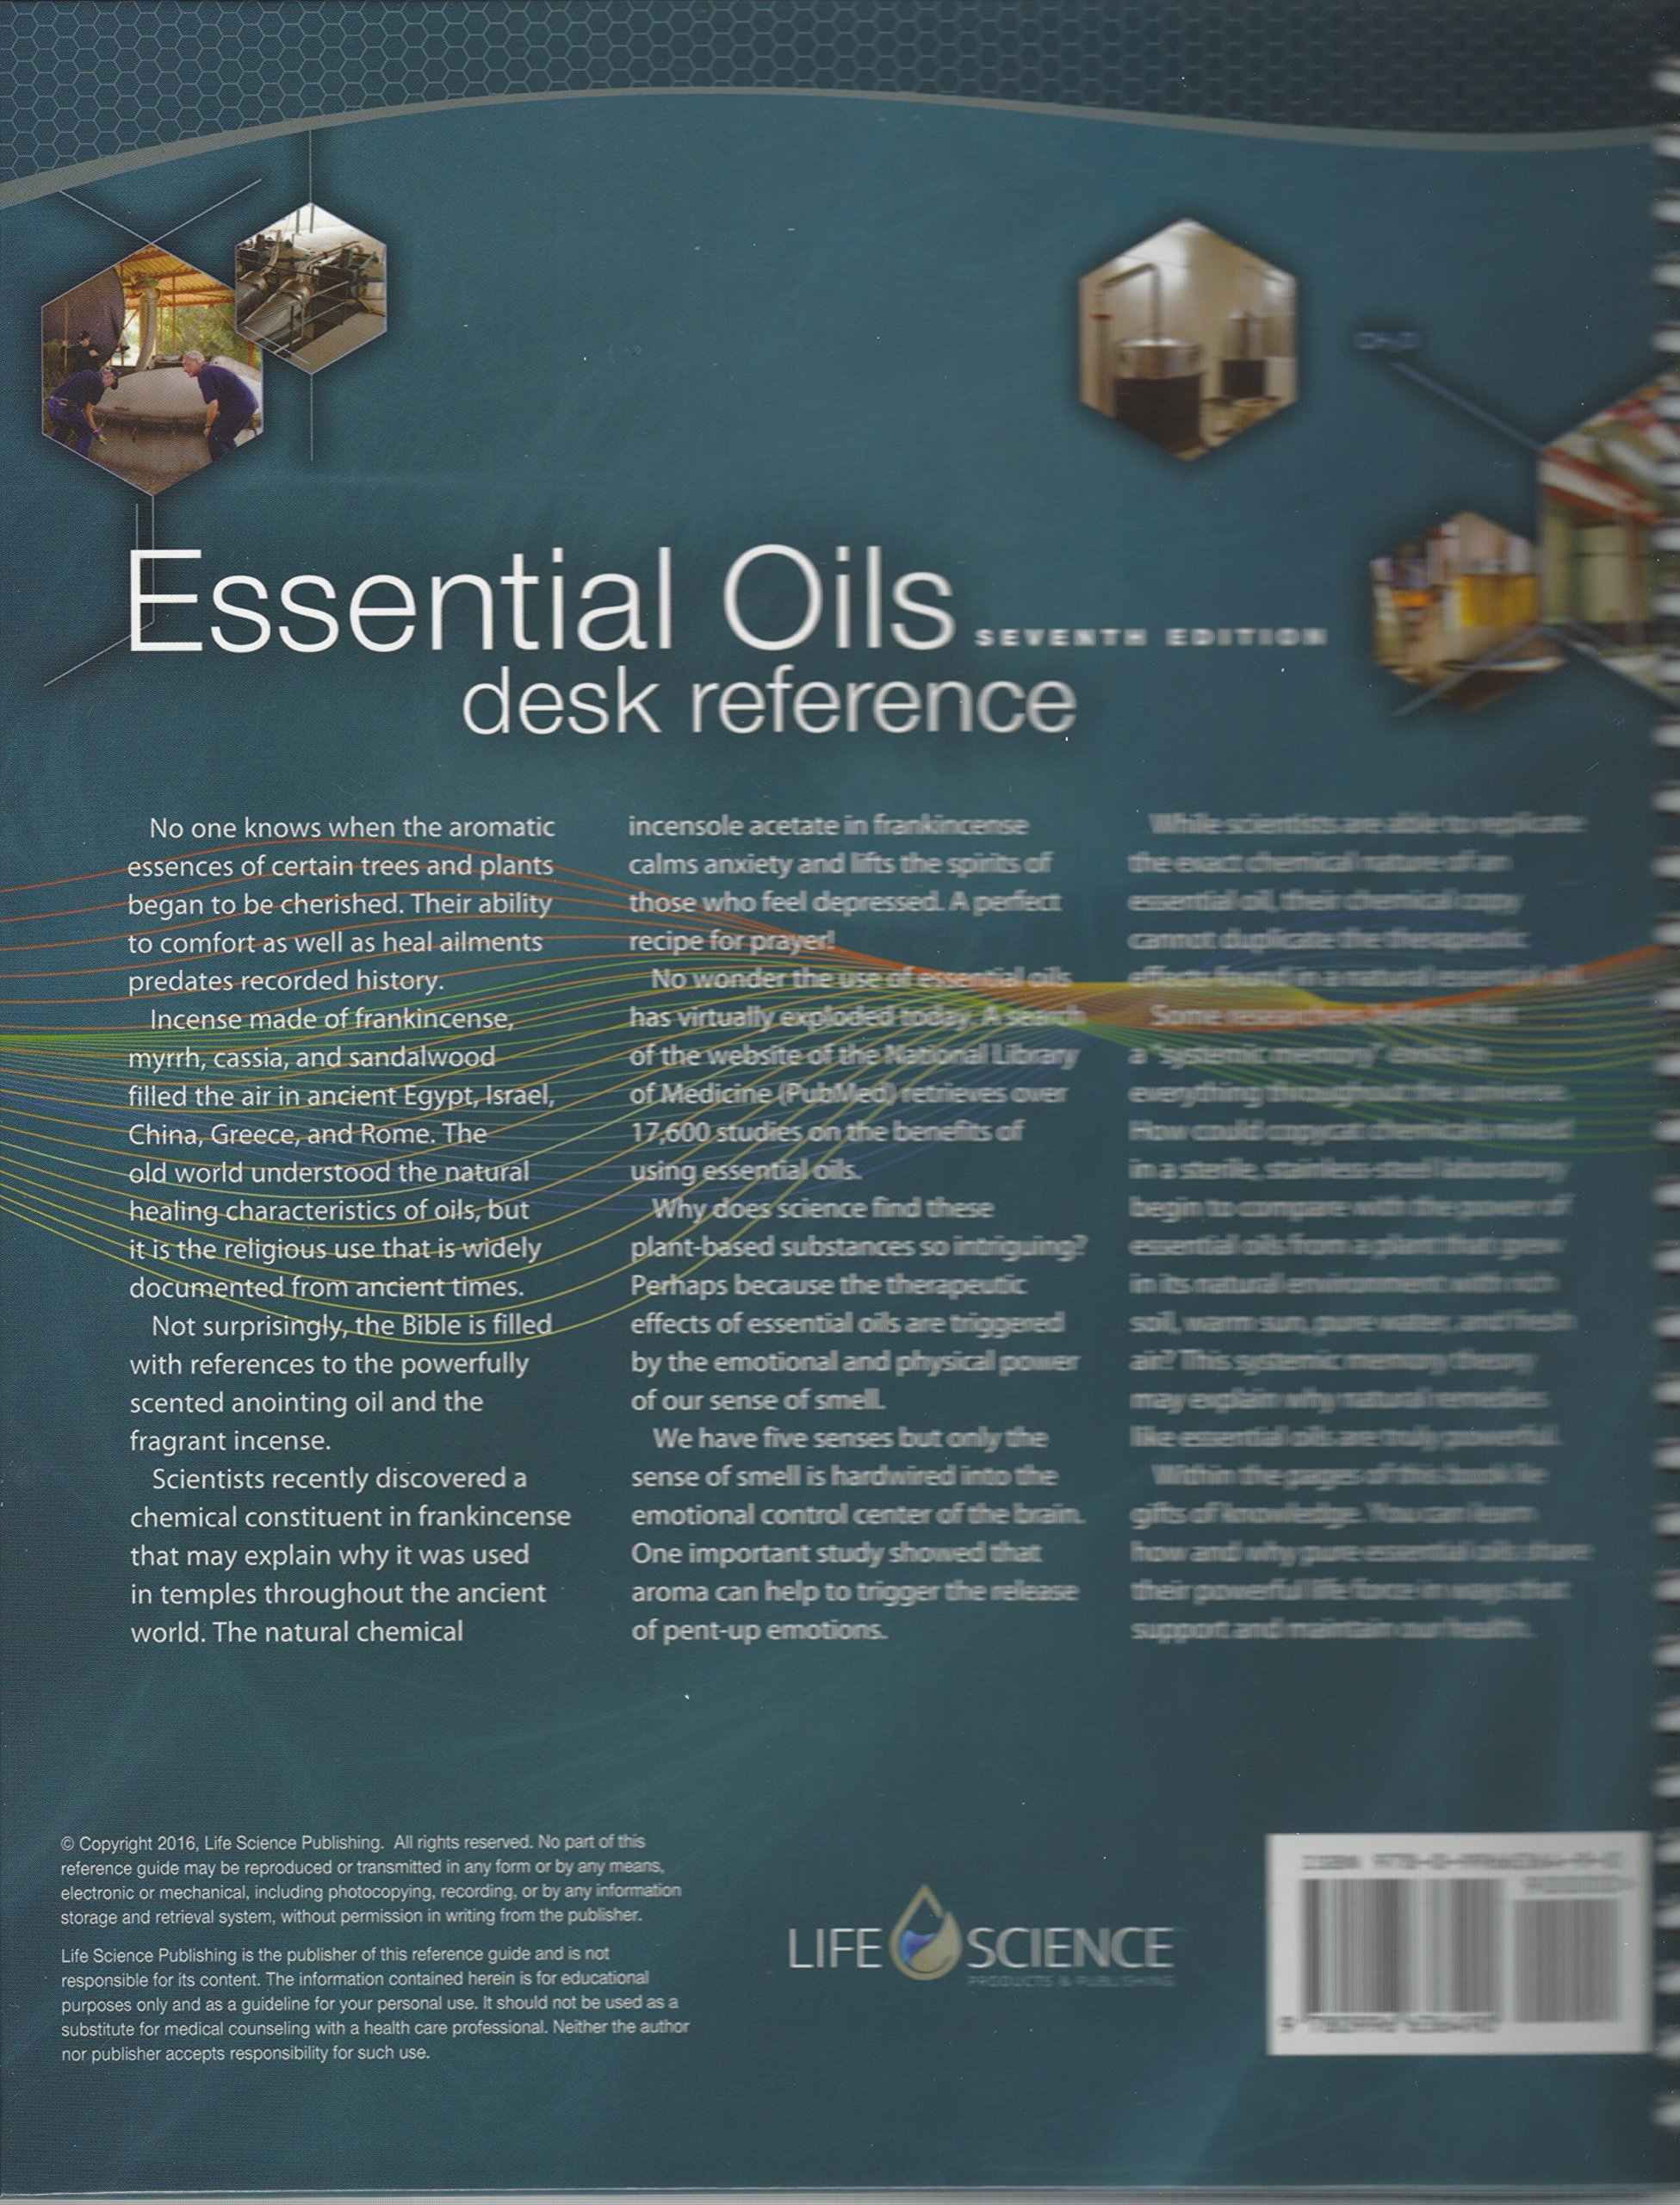 Essential Oils Desk Reference 7th Edition: Life Science Publishing:  9780996636490: Amazon.com: Books